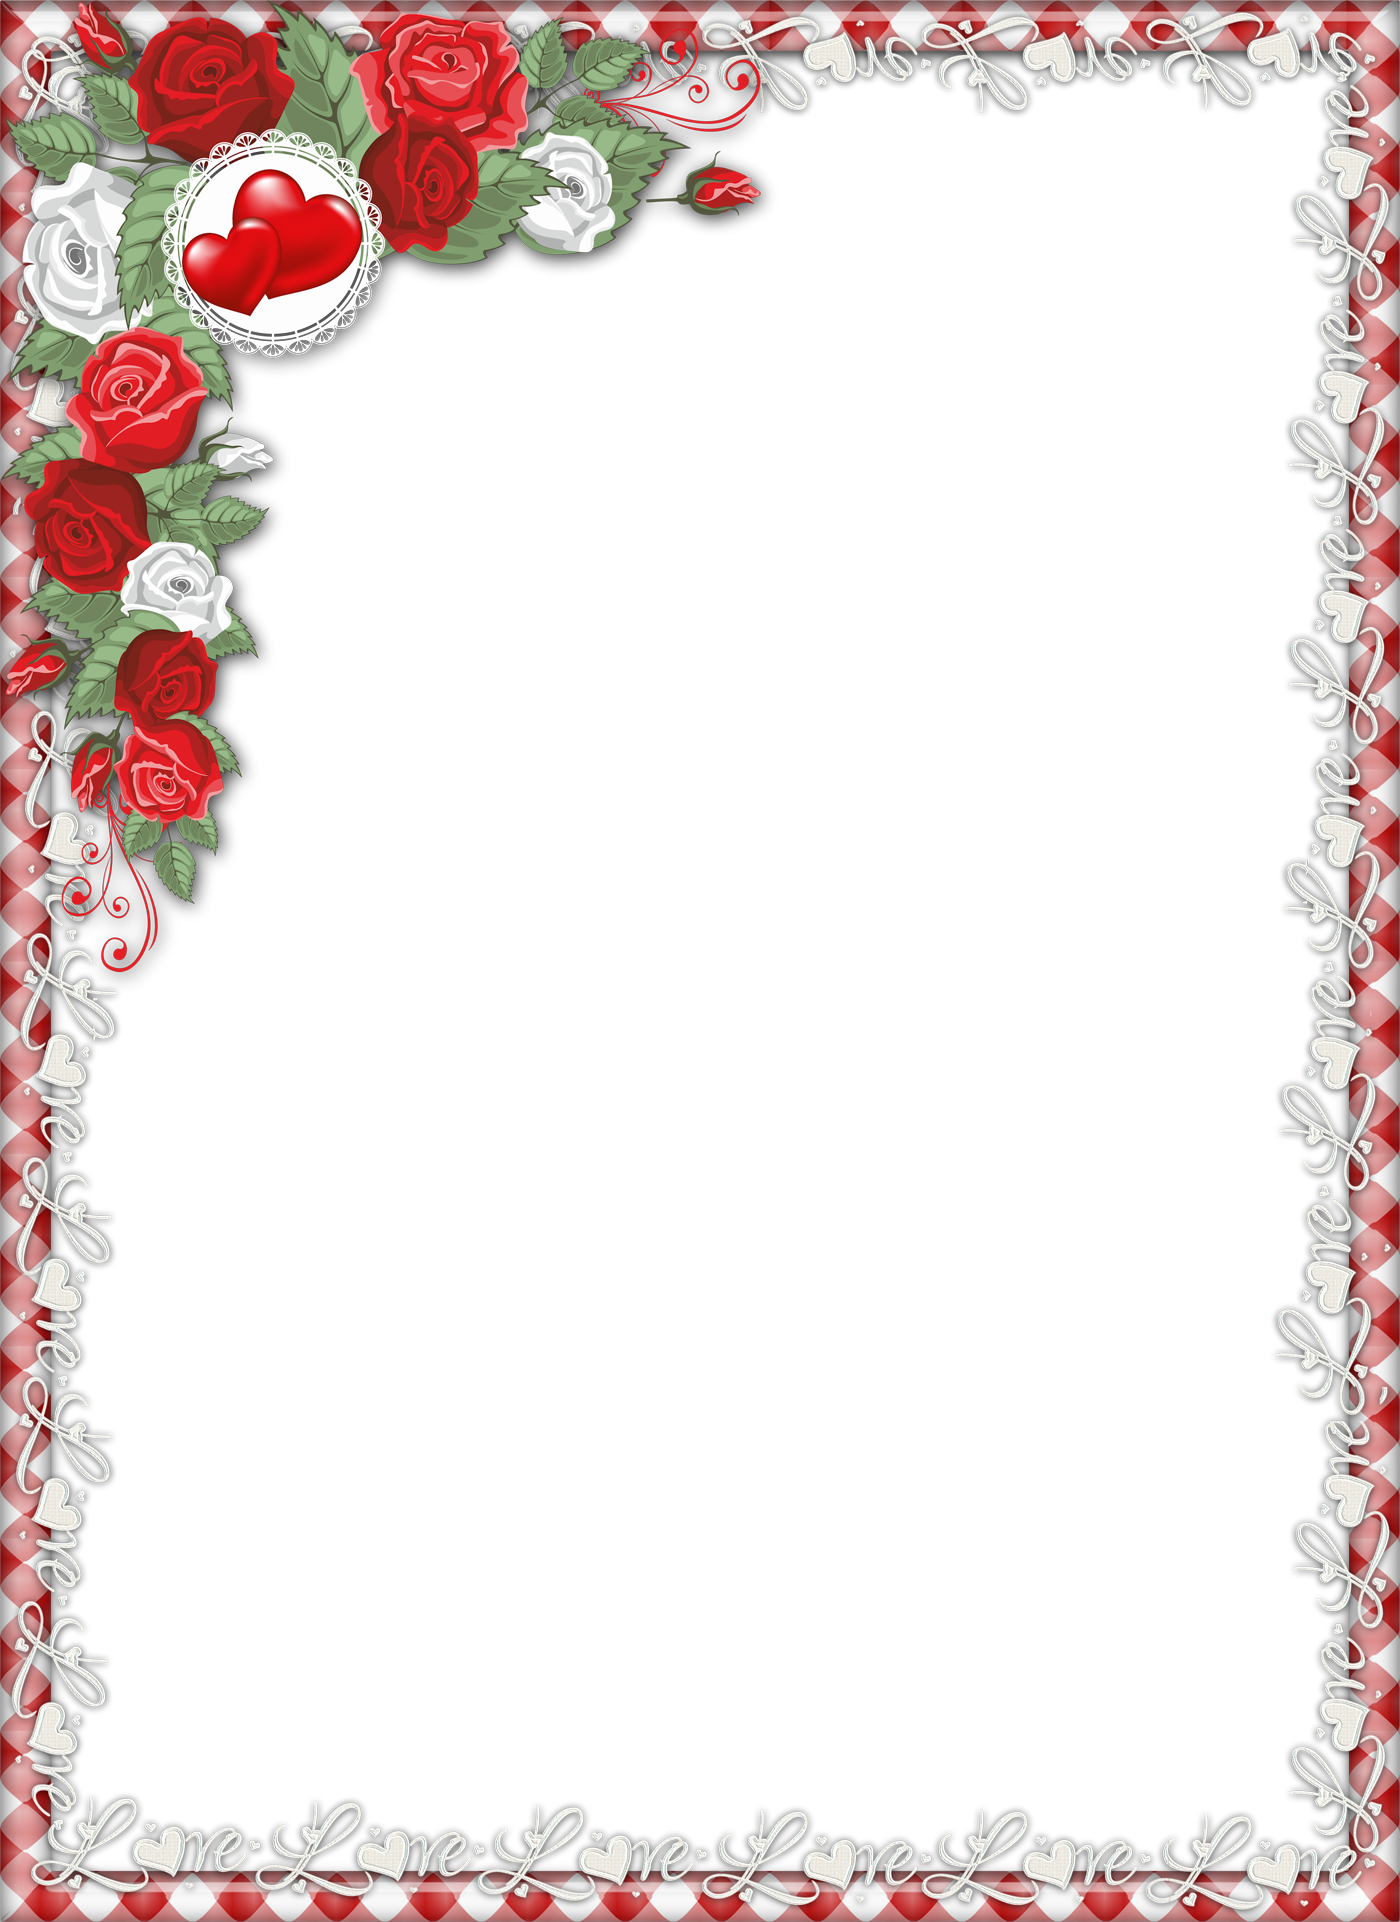 Red Love PNG Transparent Frame with Roses | Gallery Yopriceville -  High-Quality Images and Transparent PNG Free Clipart